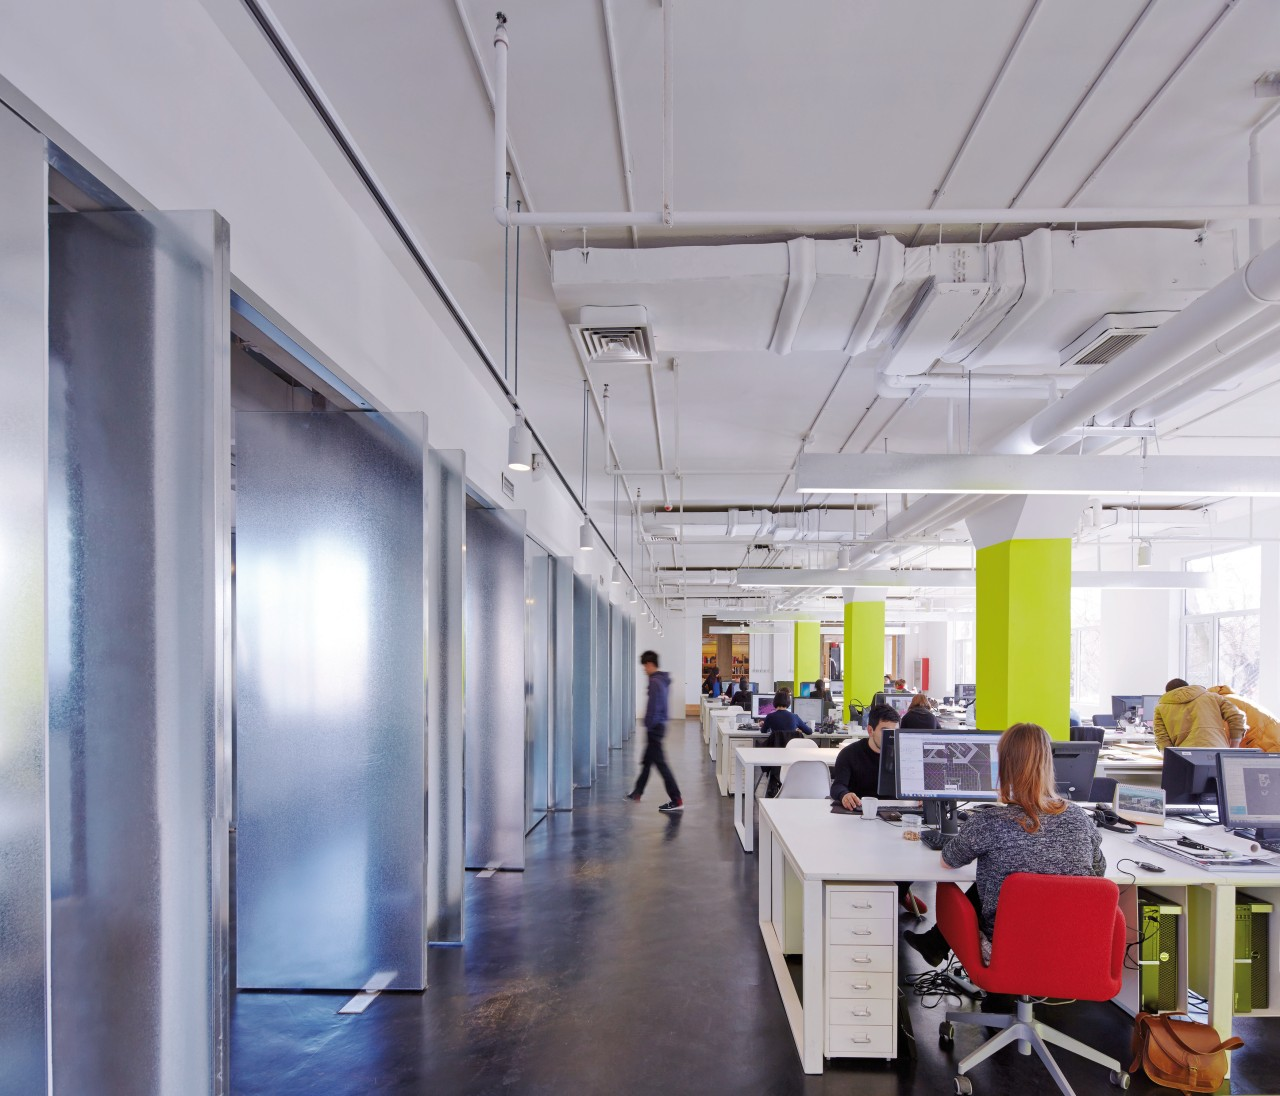 Full-height metal-wrapped pivoting doors allow sightlines through the ceiling, daylighting, interior design, office, gray